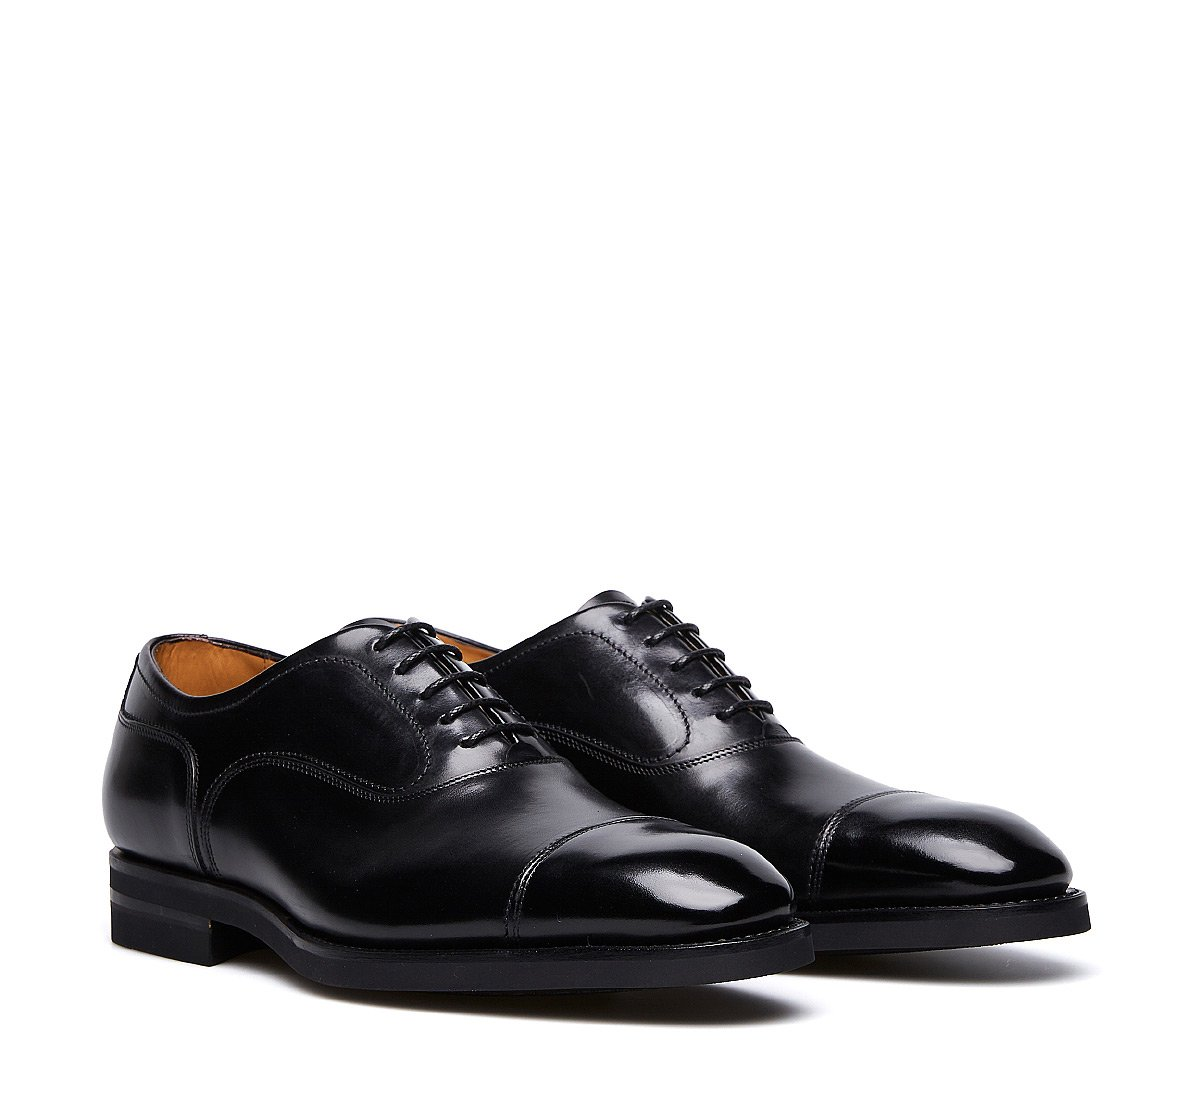 Exquisite calfskin lace-ups